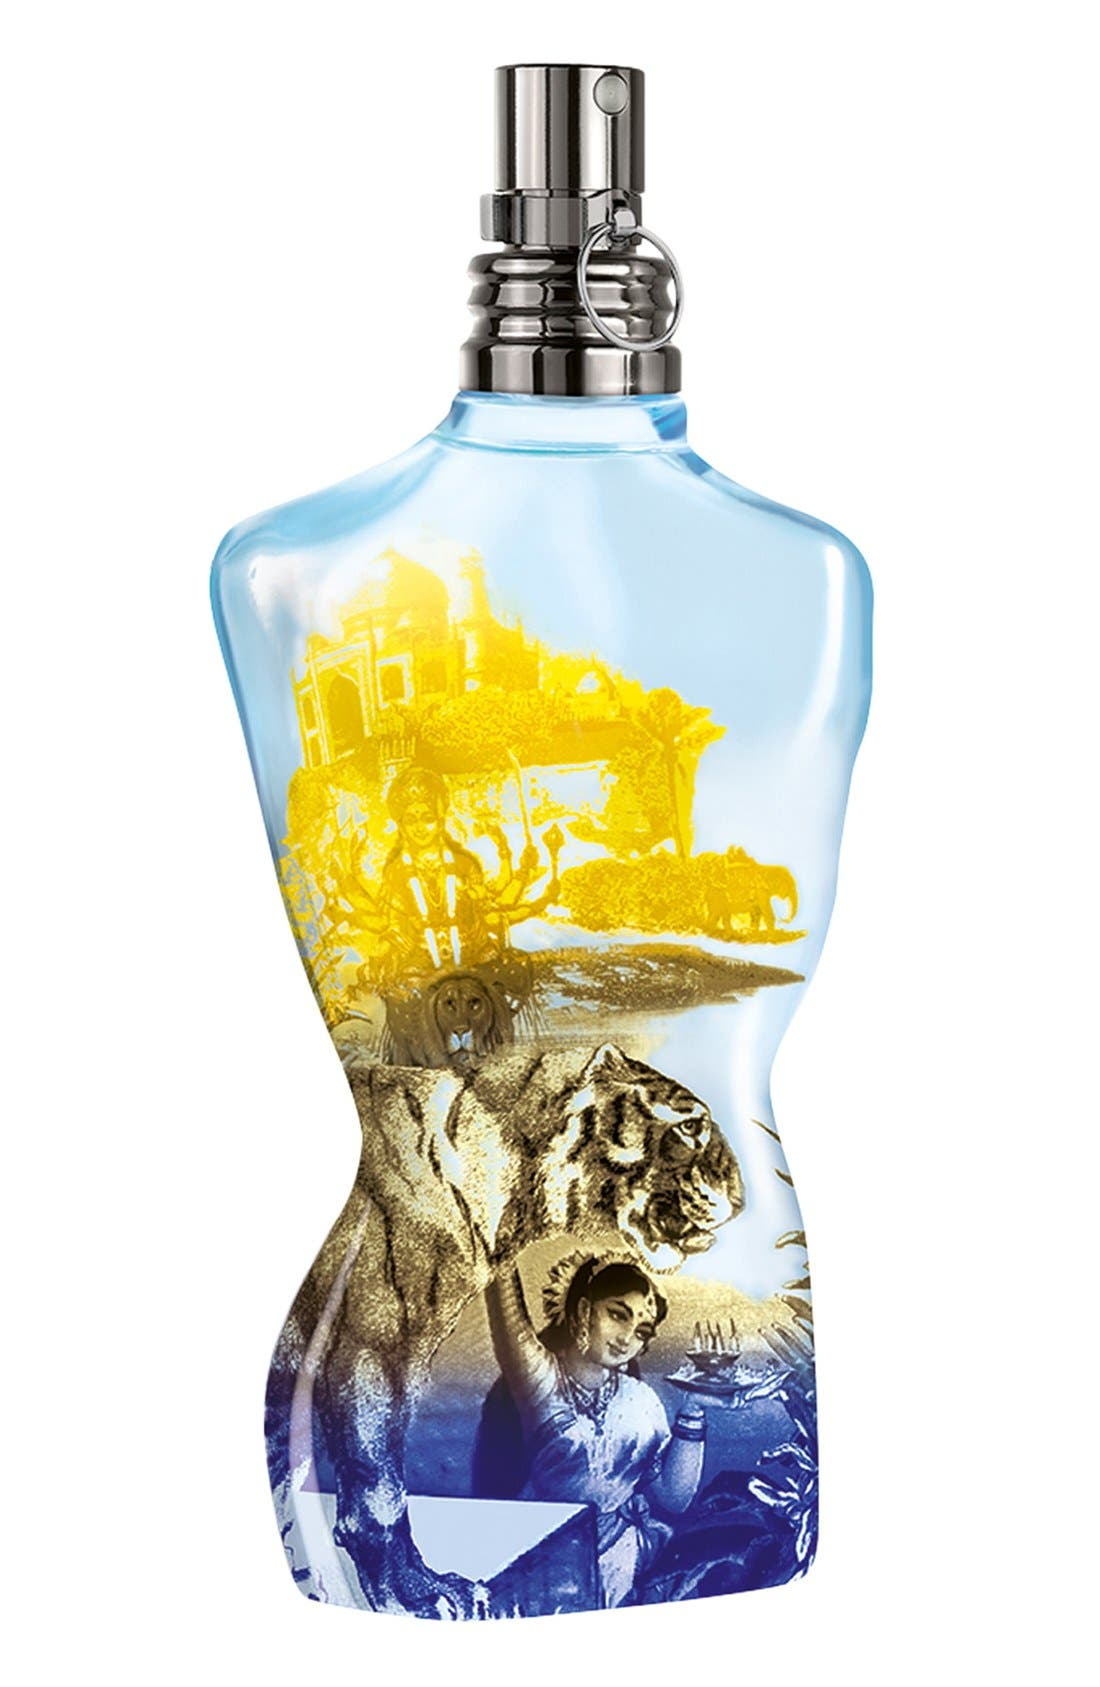 LE MALE,                             Jean Paul Gaultier 'Le Male - Summer Edition' Eau de Toilette,                             Alternate thumbnail 2, color,                             000